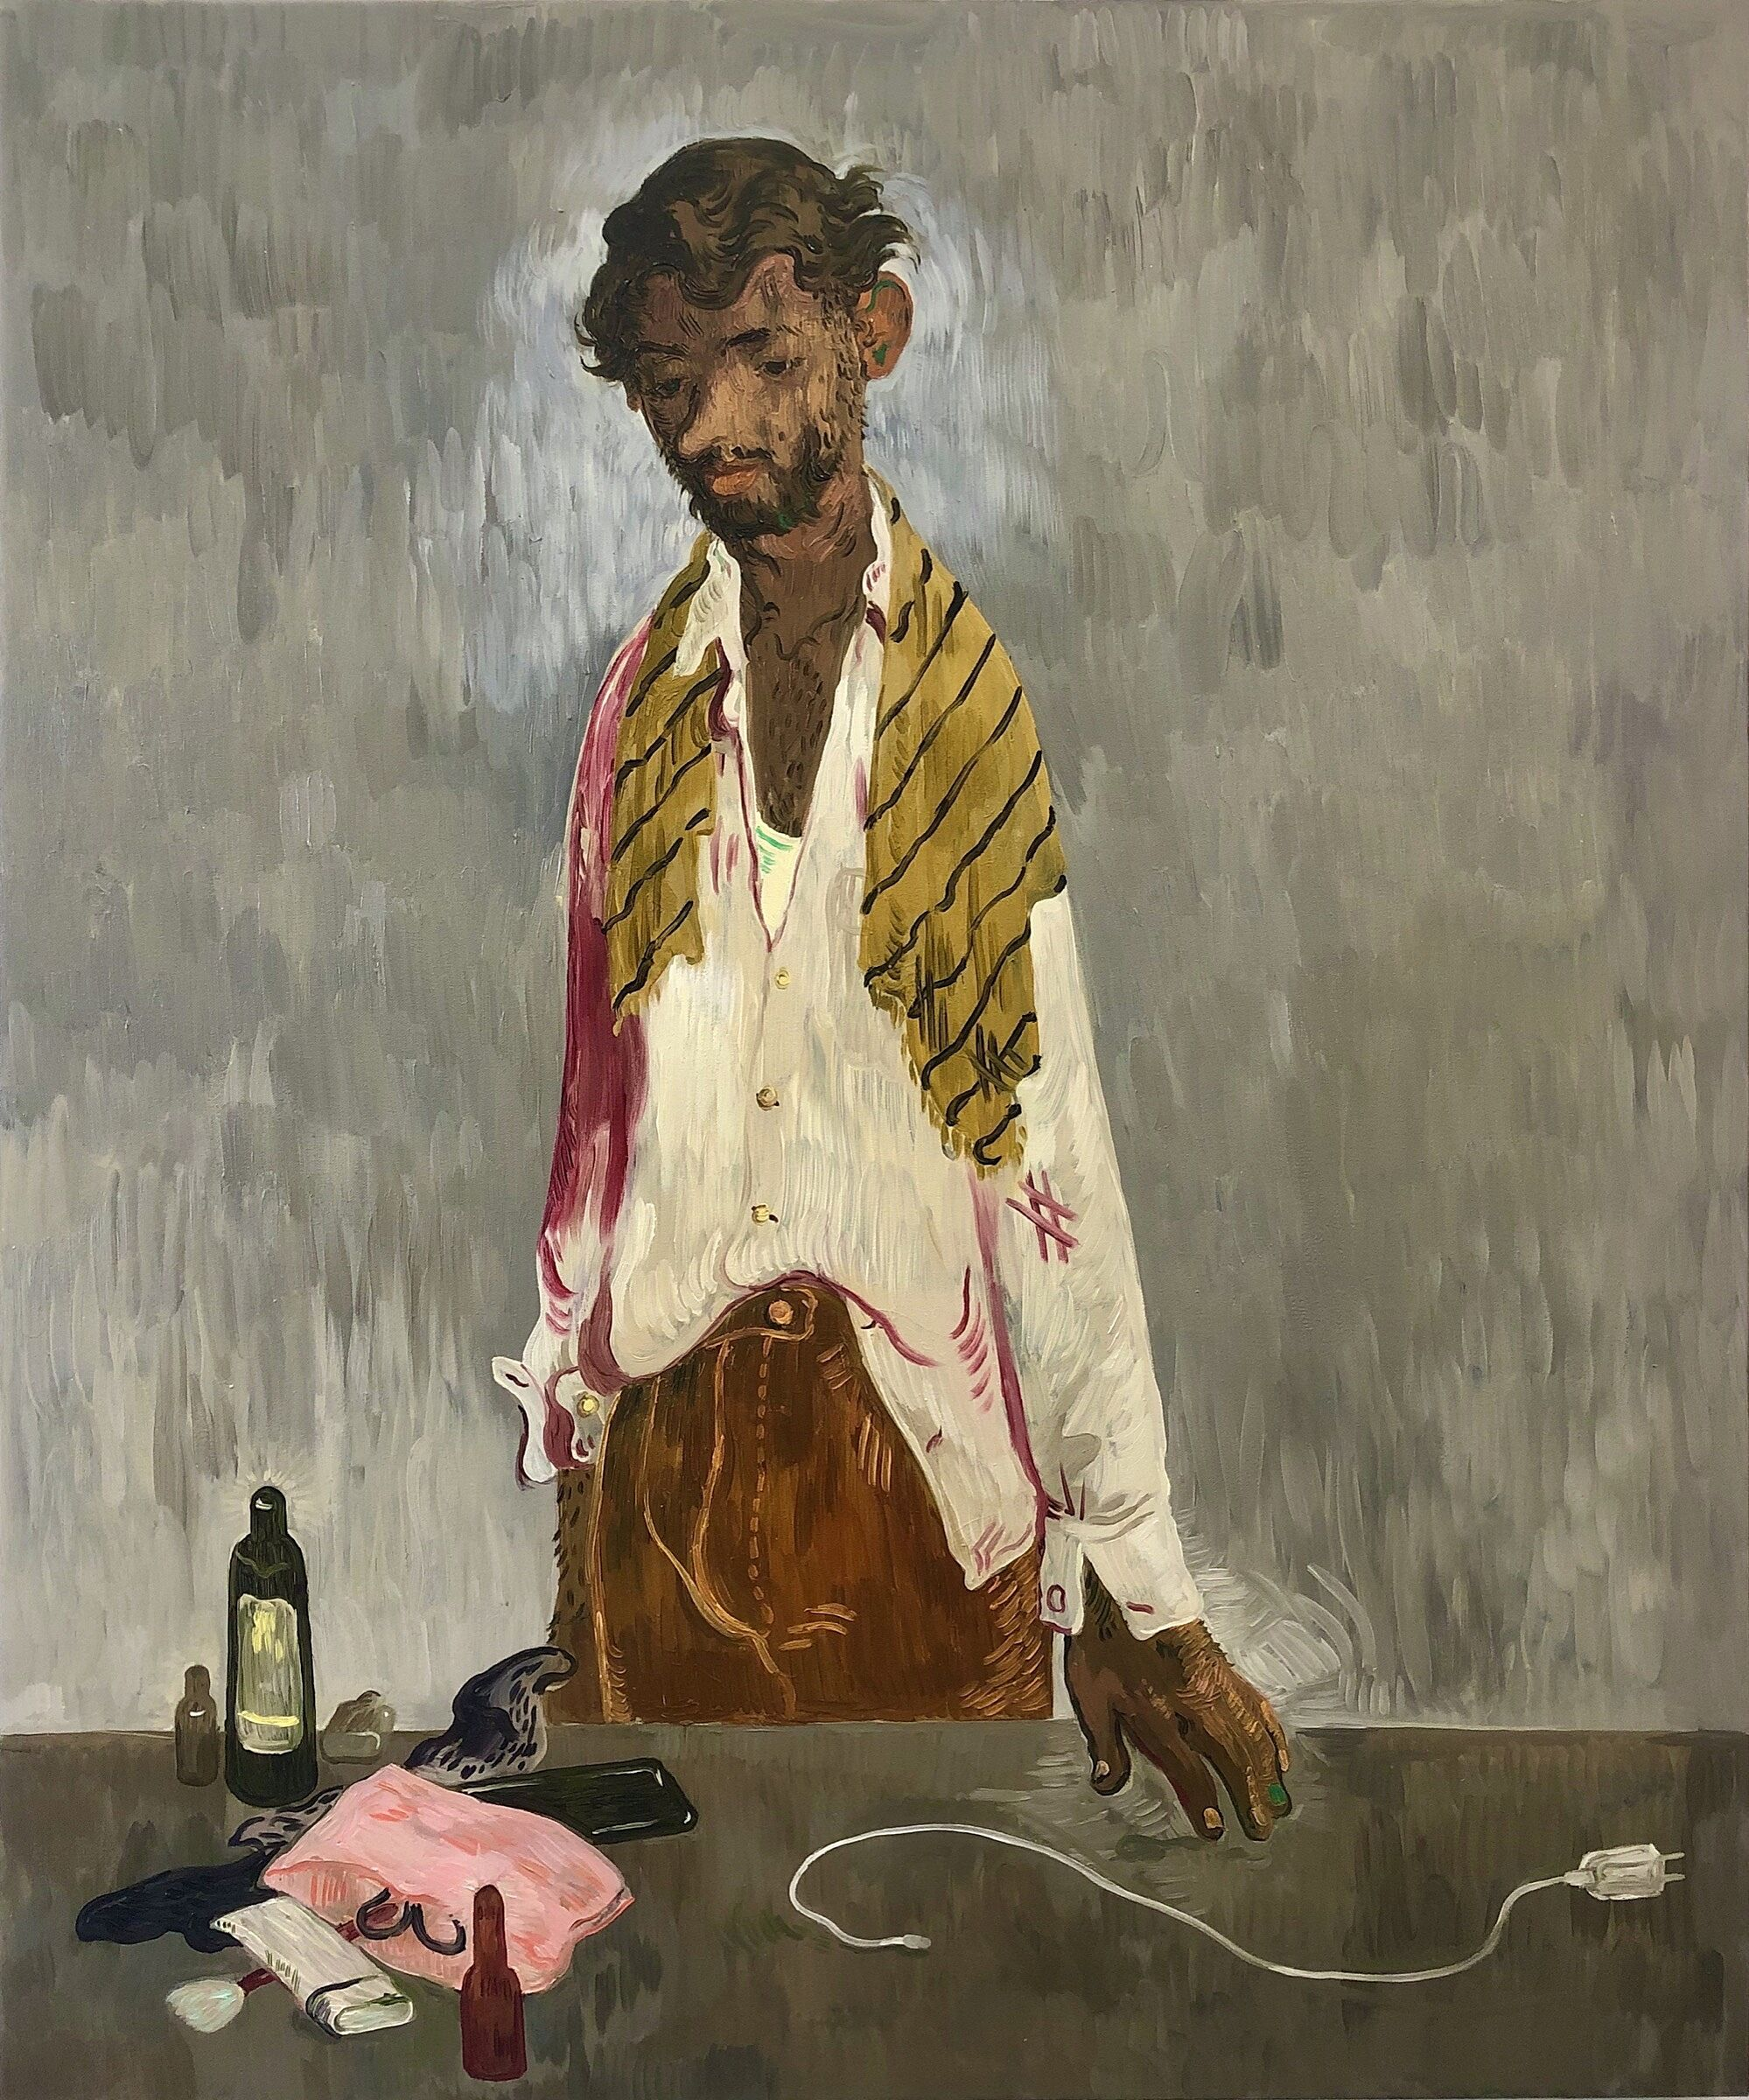 A painting of a man with brown skin and brown hair looking down at a table of objects.